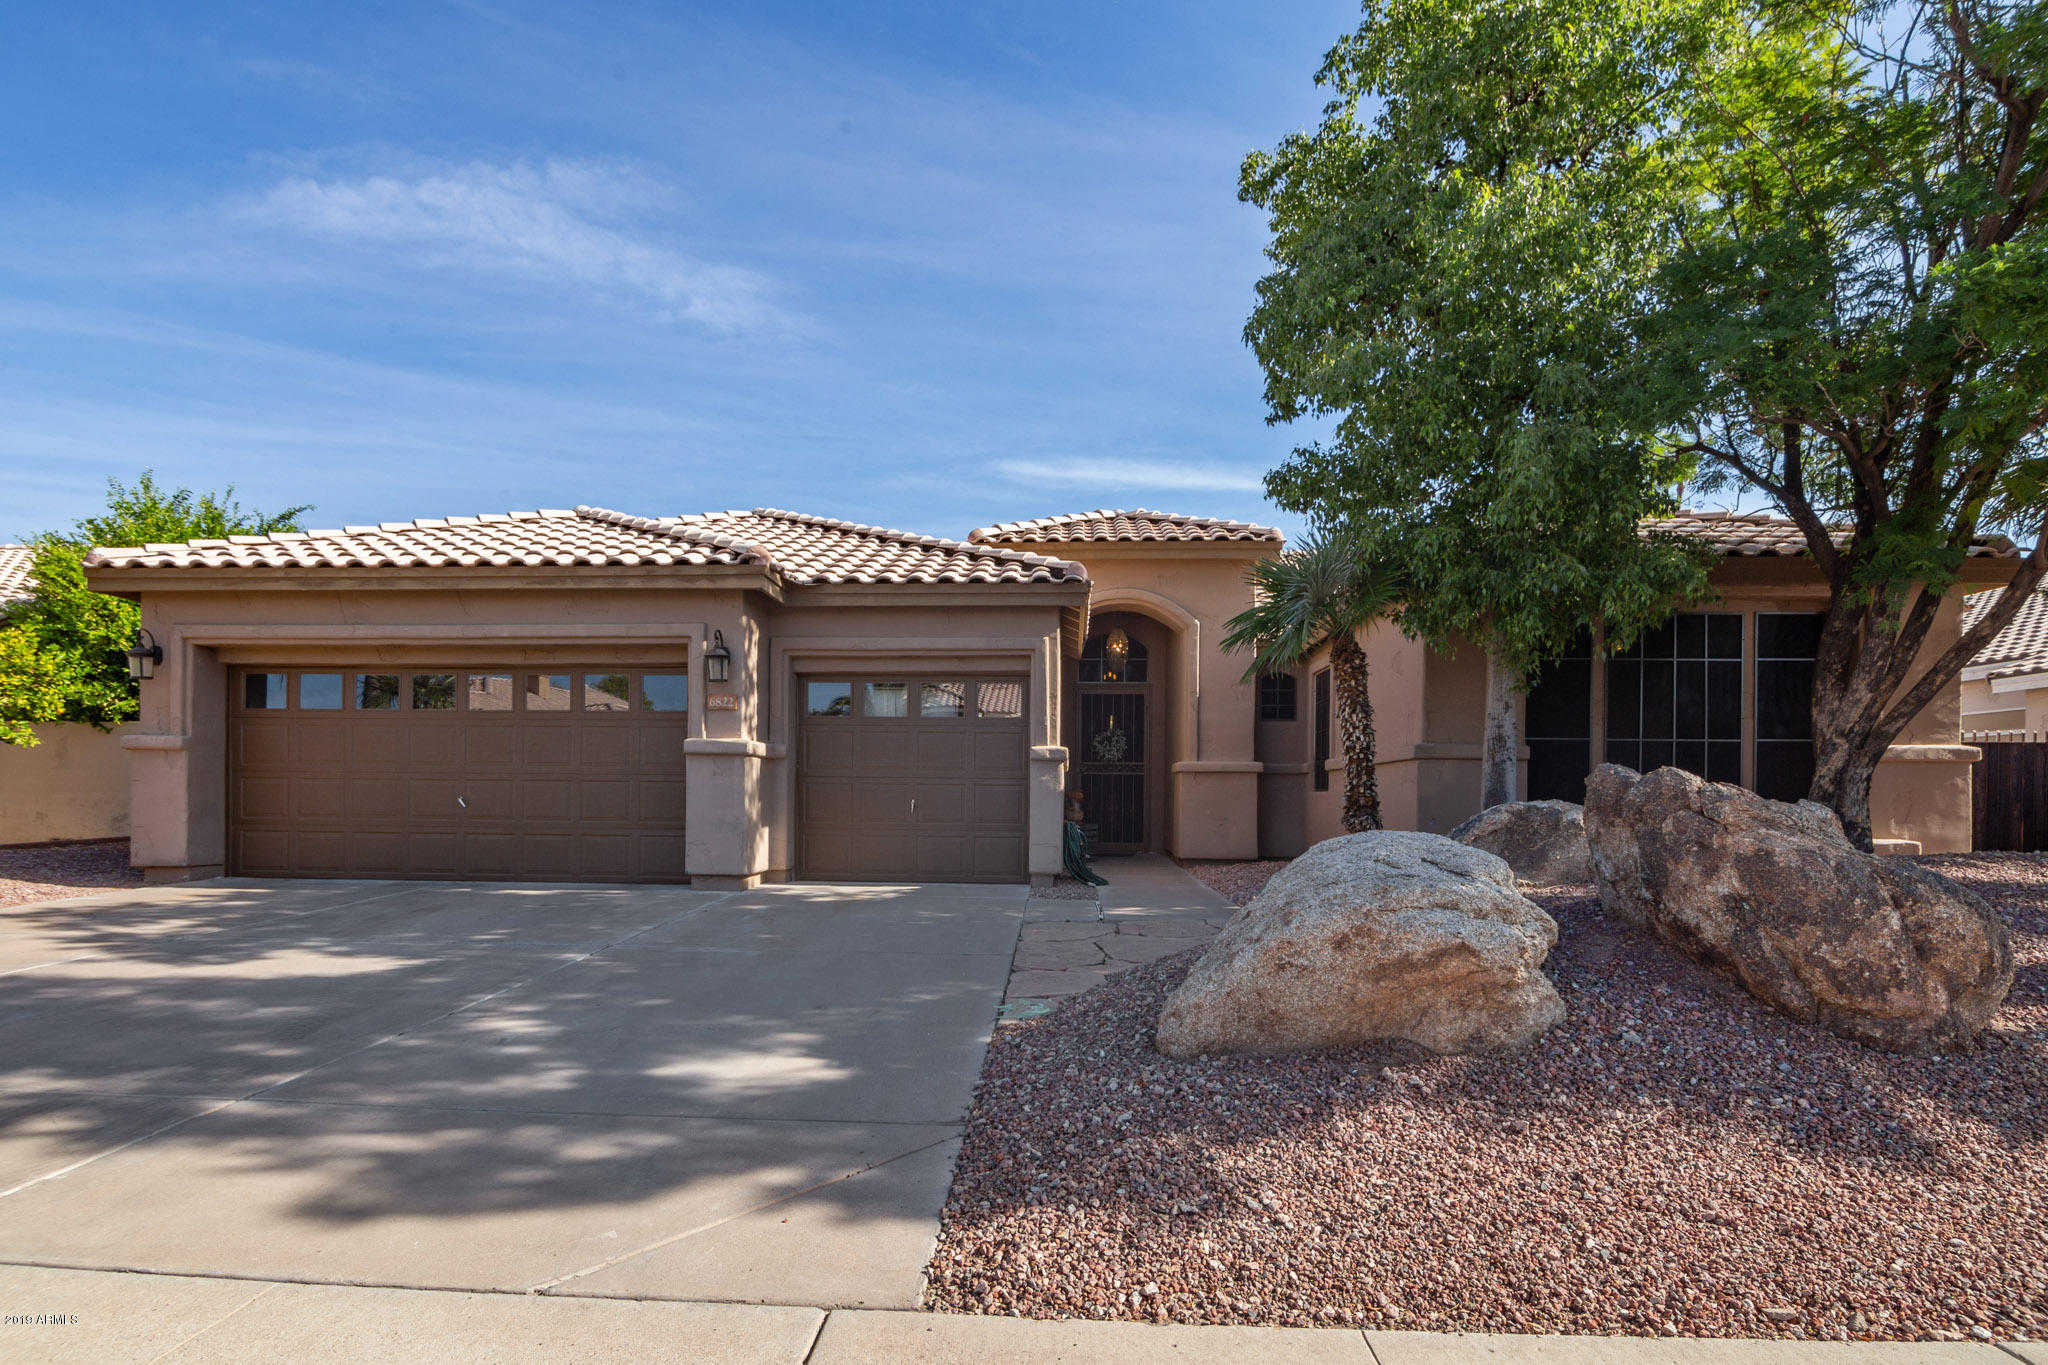 $409,900 - 4Br/2Ba - Home for Sale in Hillcrest Ranch Parcel A Lot 1-133 Tr A-g, Glendale